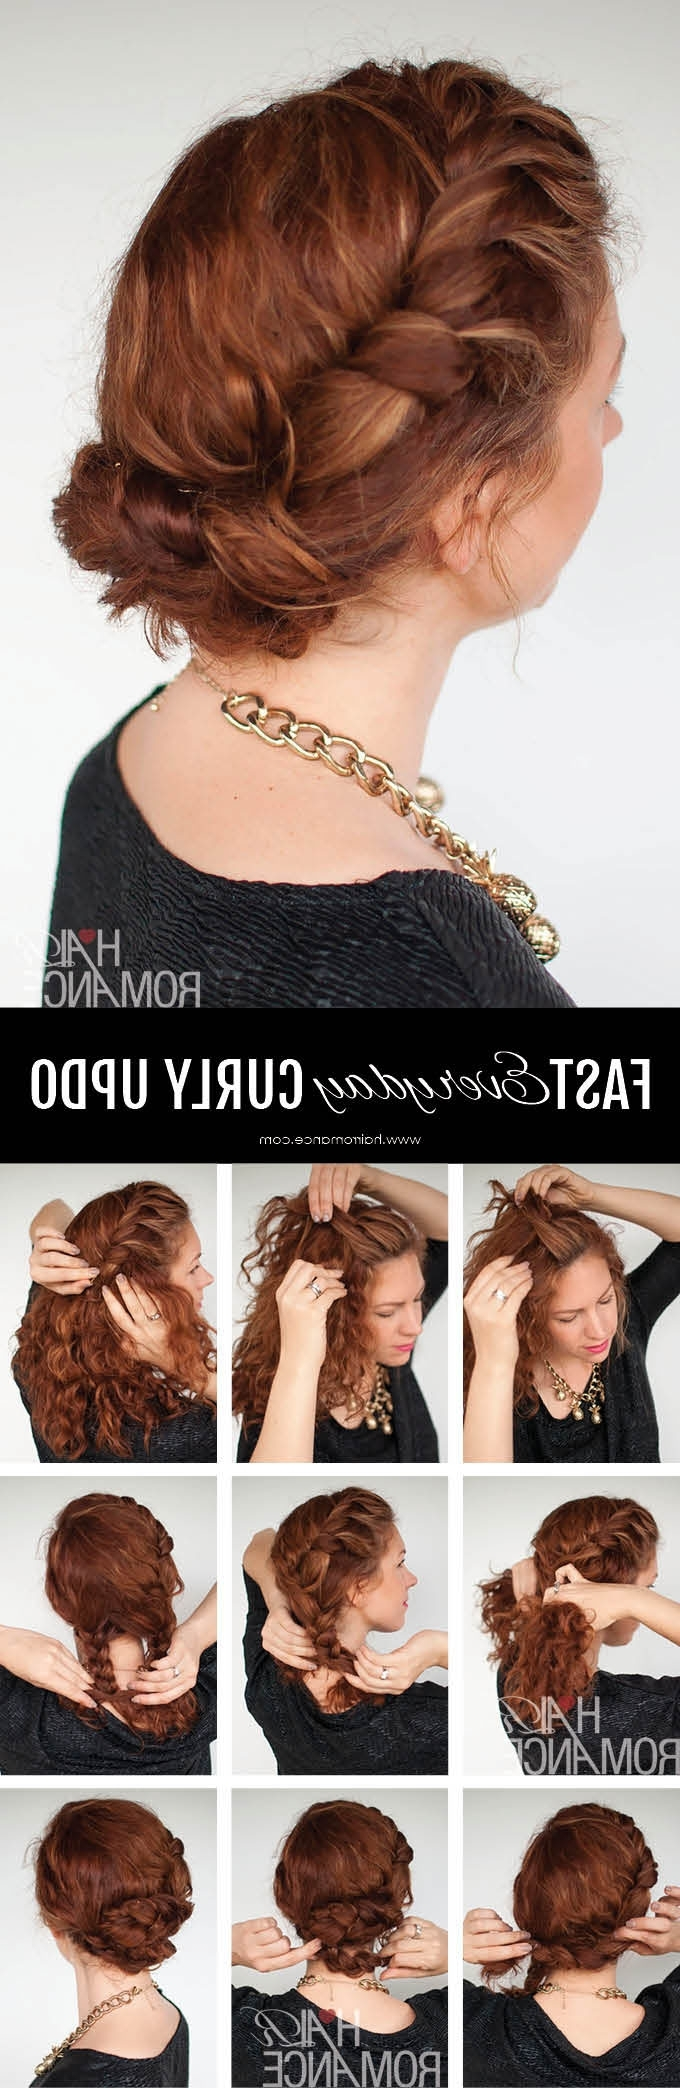 My Quick Everyday Curly Hair Updo – Hair Romance In Updos For Curly Hair (View 9 of 15)